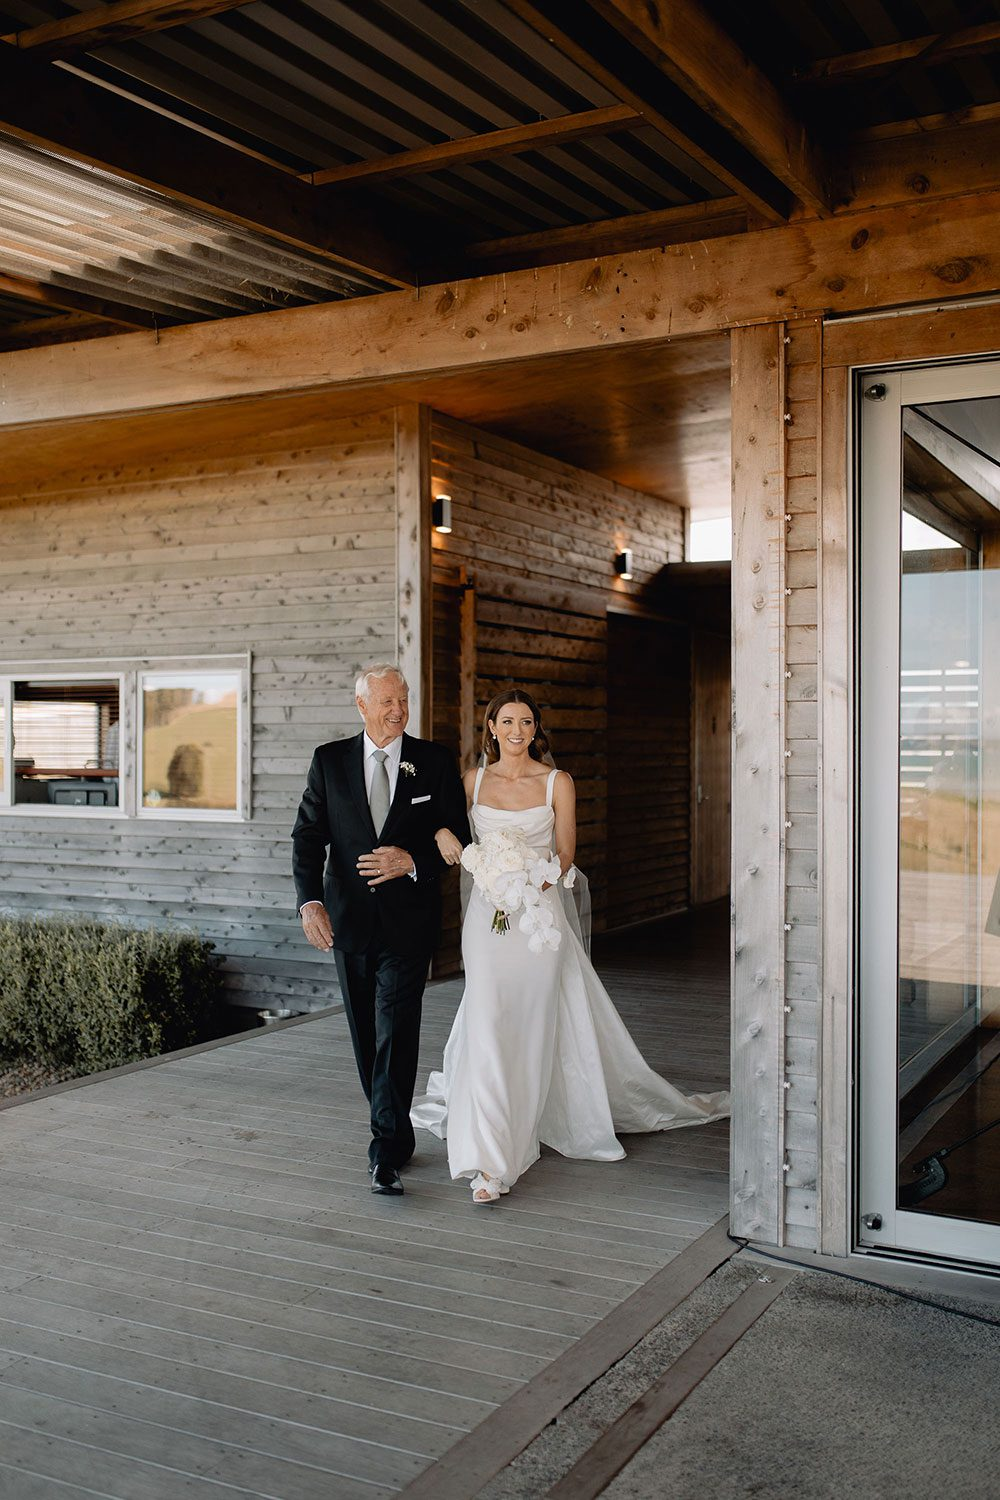 Bride wearing NZ Bespoke Bridal Gown made of silk faile with cowl bodice and detachable overskirt by Vinka Designs - giving away